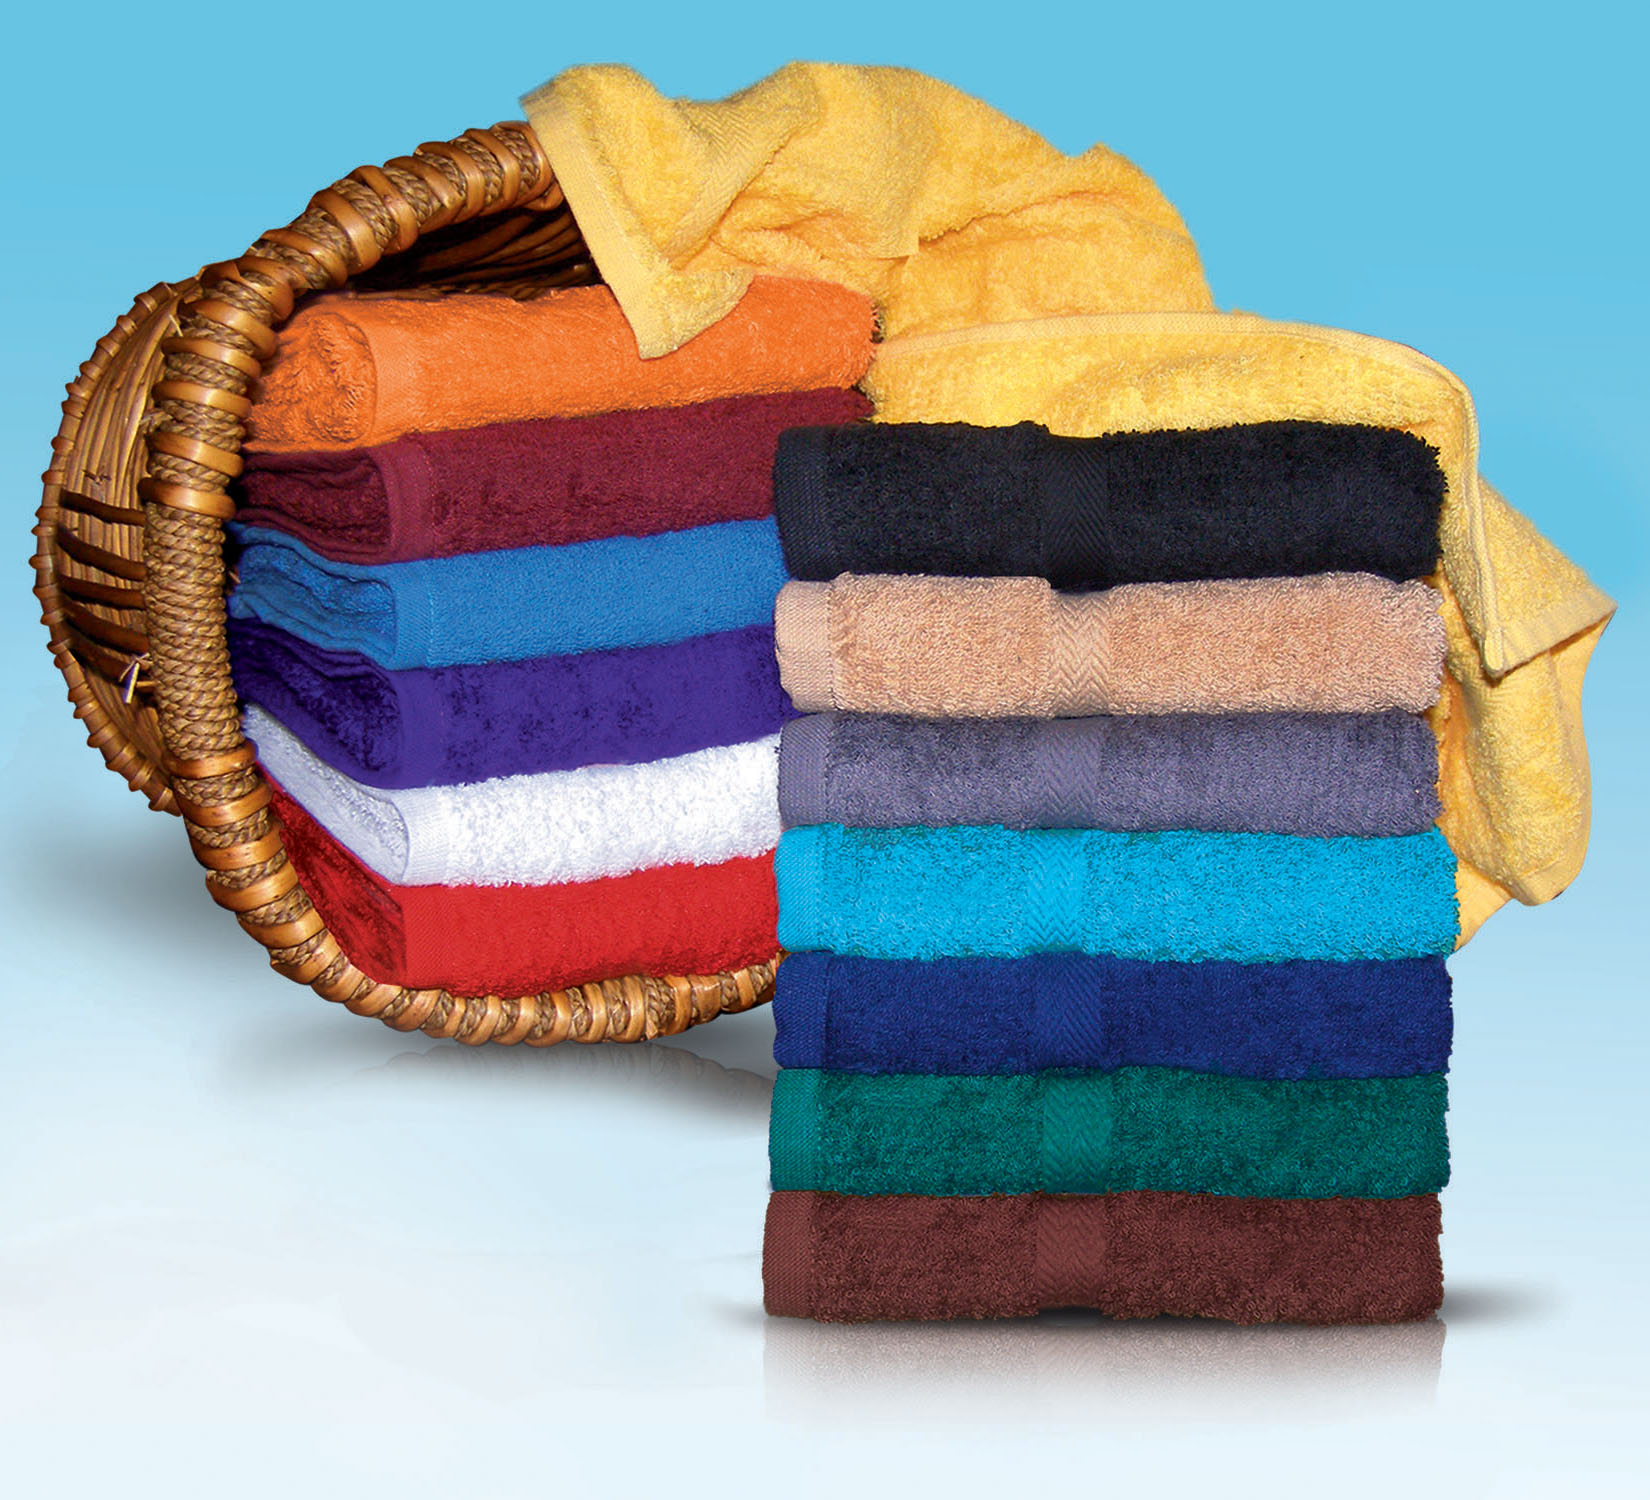 16x30 Hand Towels by Royal Comfort  4. Lbs per/ dz. weight.